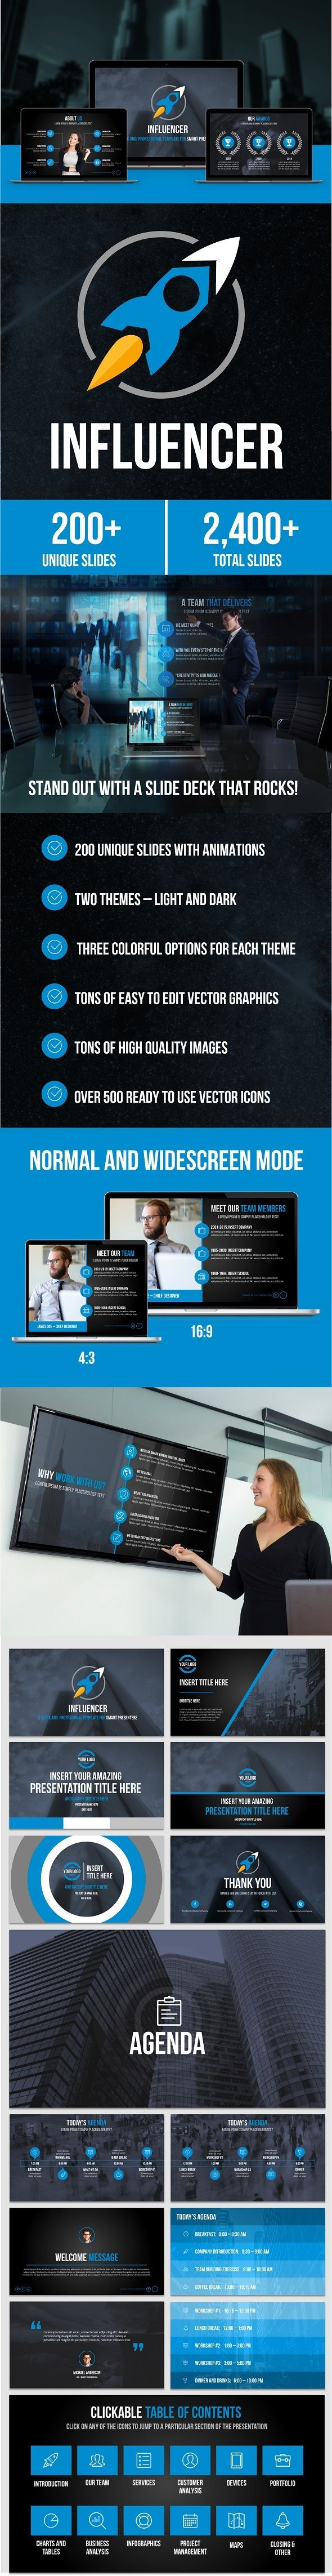 Influencer PowerPoint Presentation Template (PowerPoint Templates)